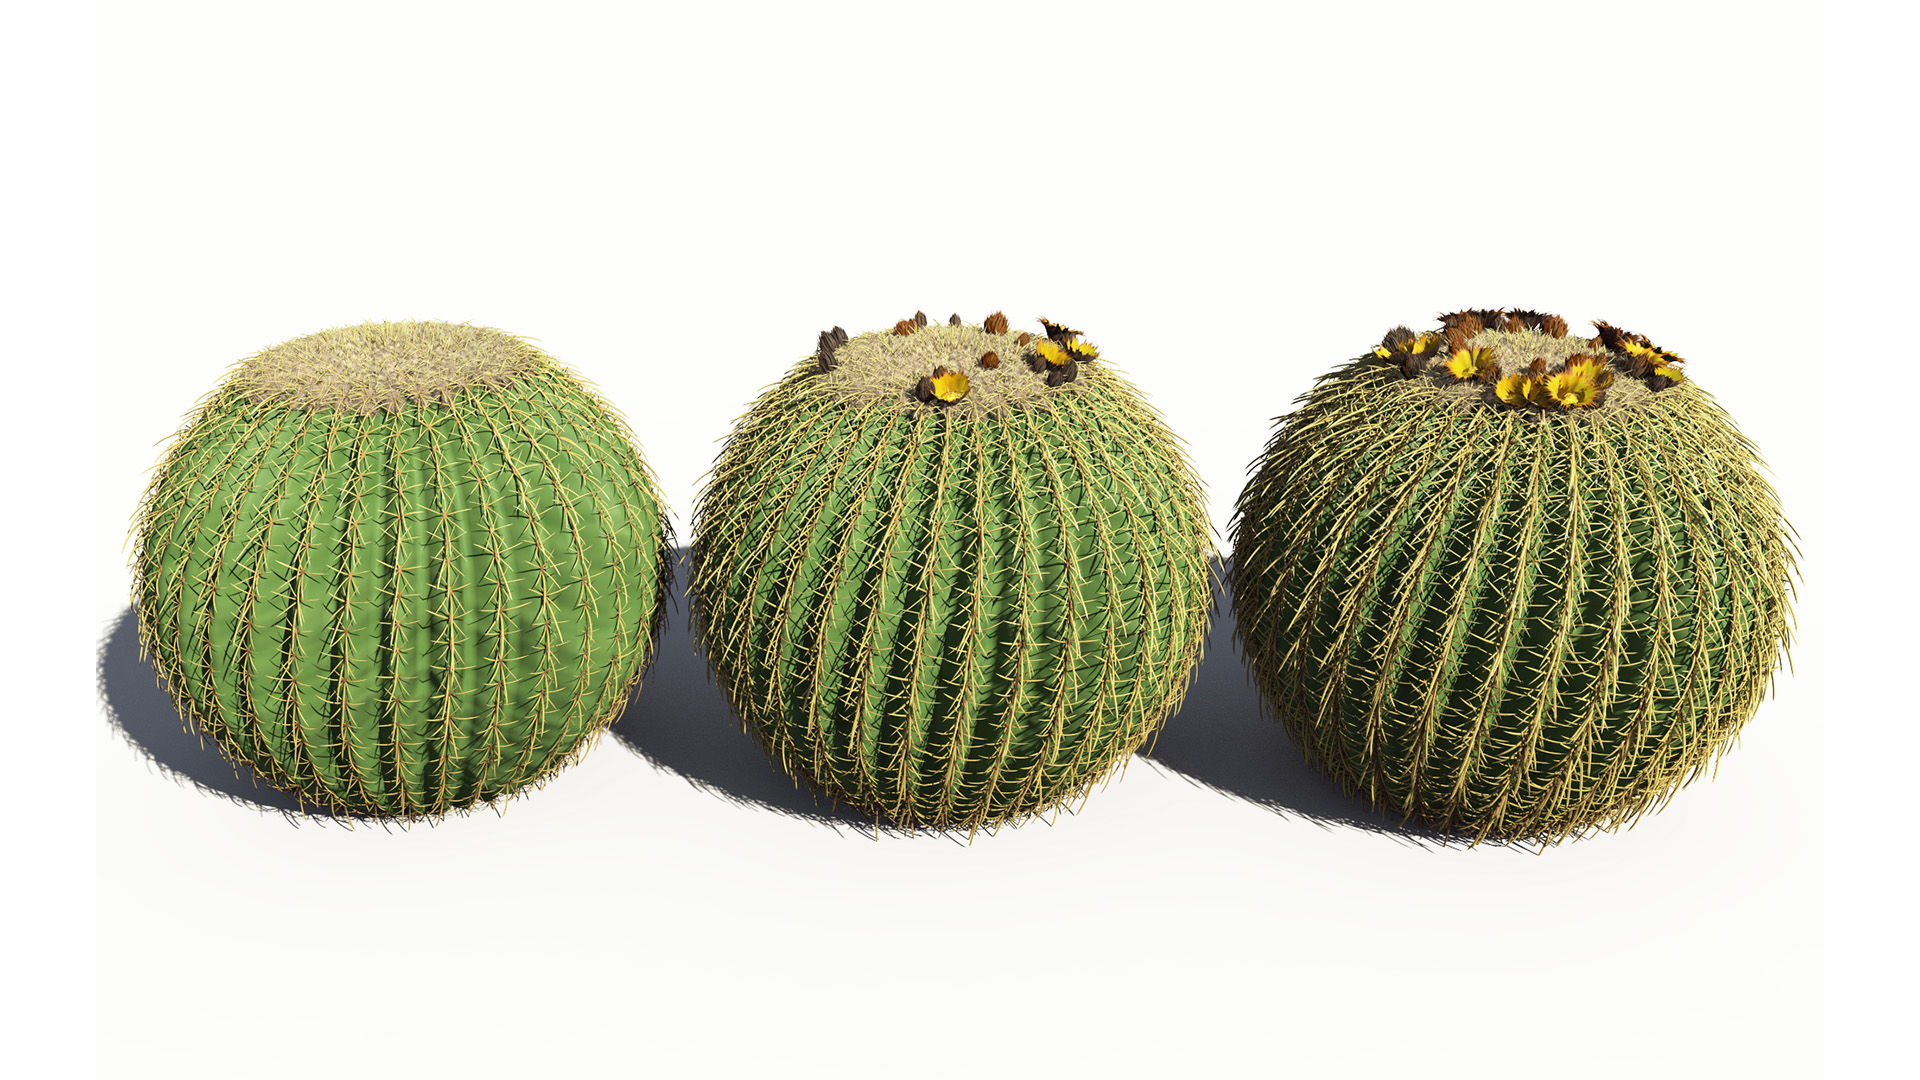 3D model of the Golden barrel cactus Echinocactus grusonii season variations